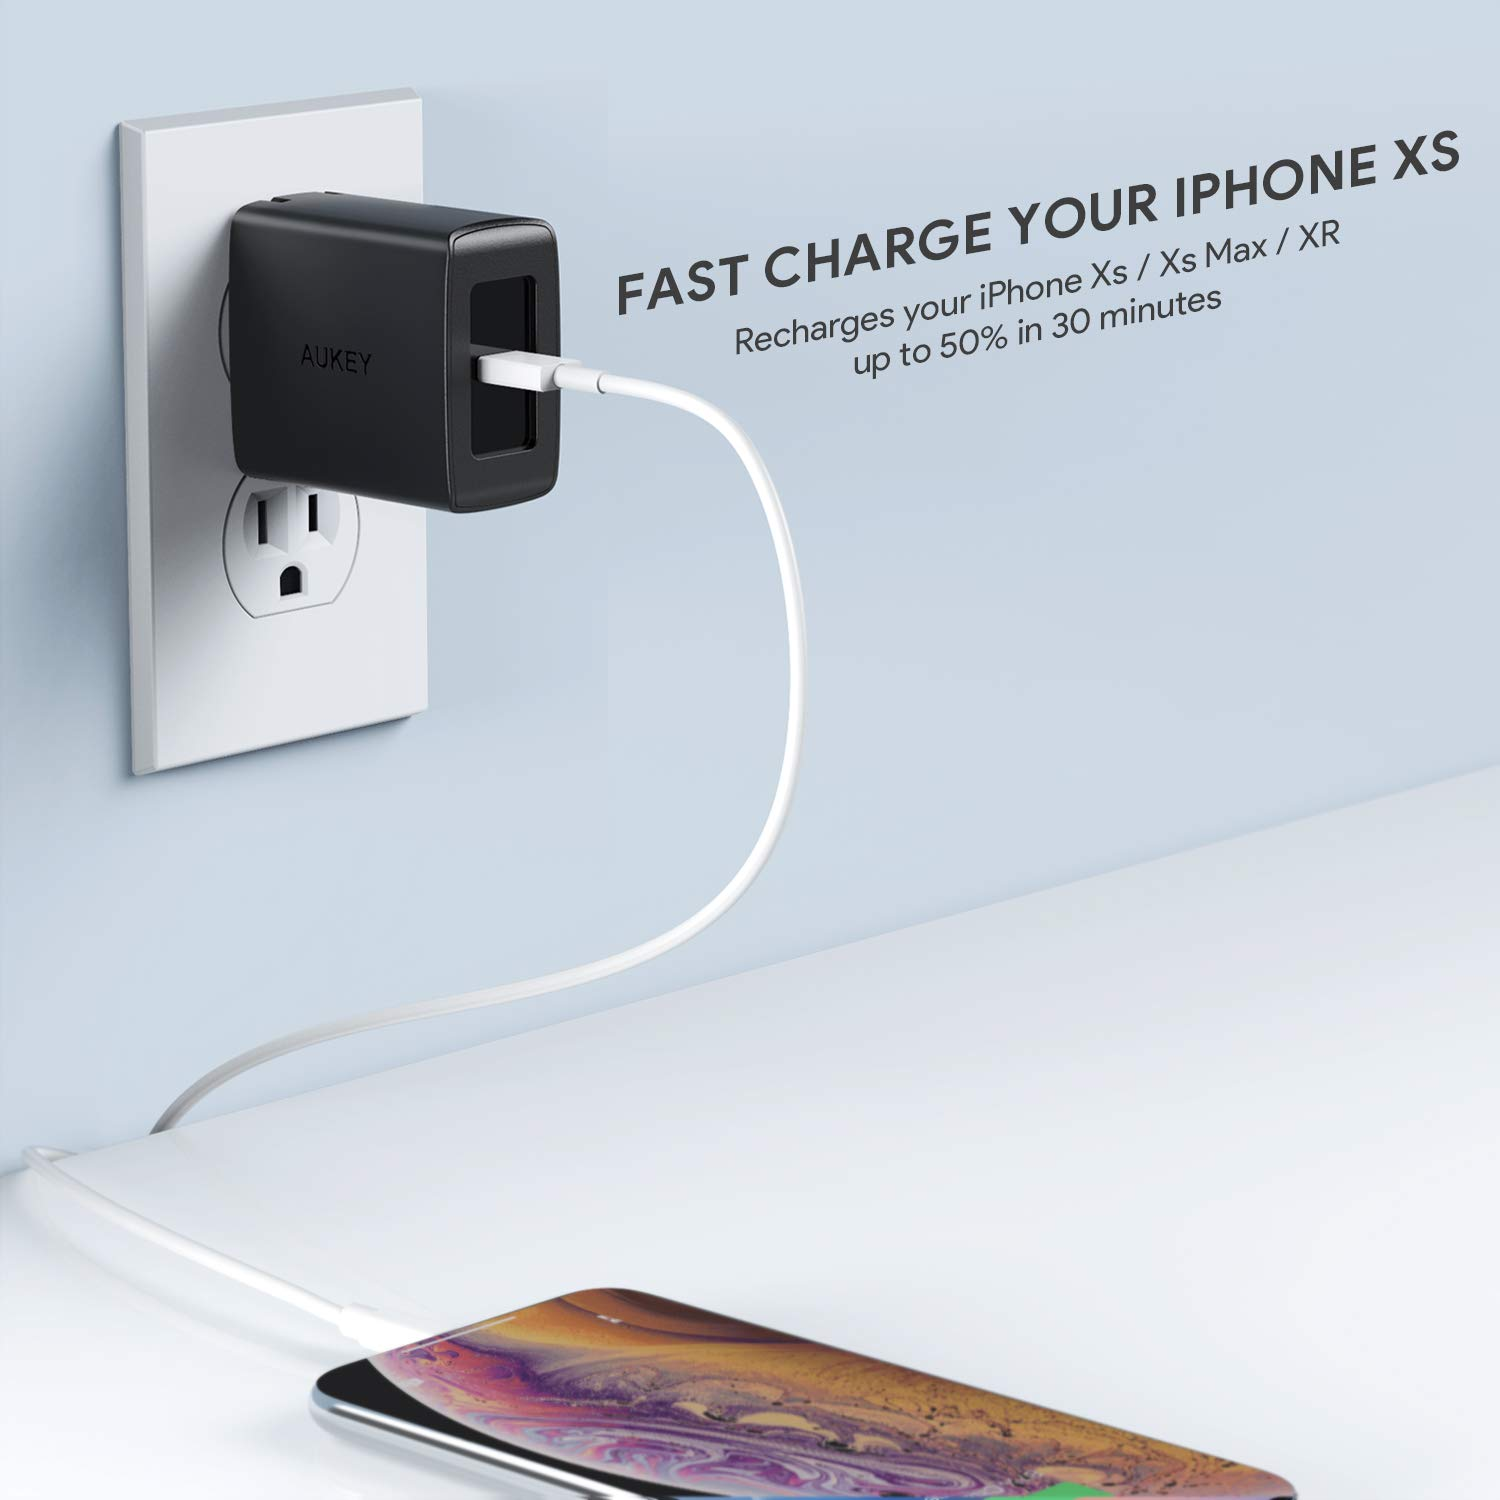 AUKEY USB C Charger with Power Delivery 3.0 18W PD USB Wall Charger, Compatible with iPhone 11/11 Pro/Max/XR, Google Pixel 2/2 XL, Samsung Galaxy S8 / ...